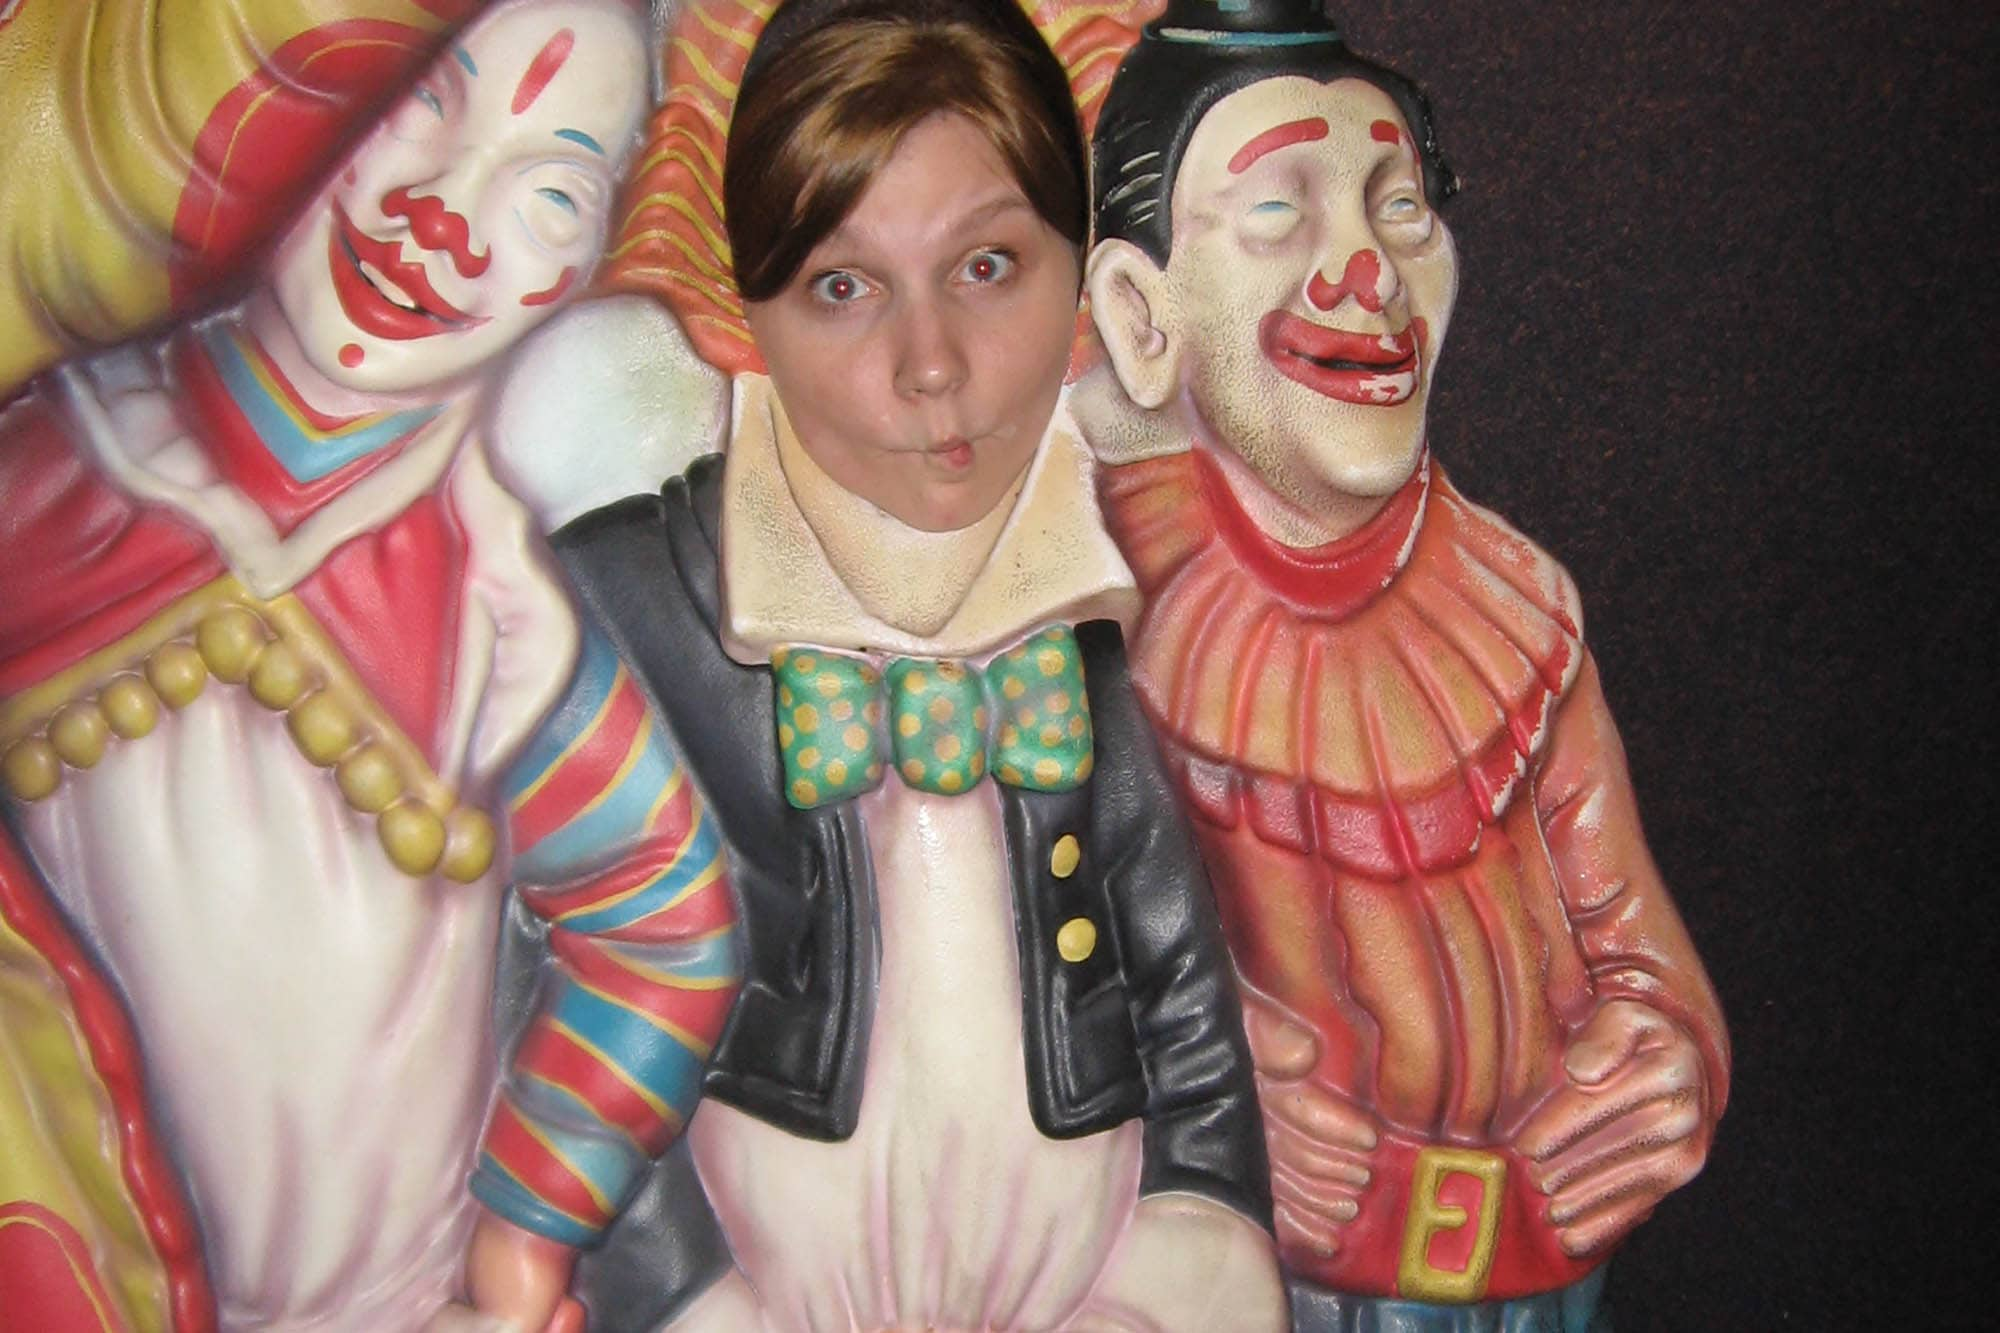 Clowning around at the Museum of Science and Industry in Chicago